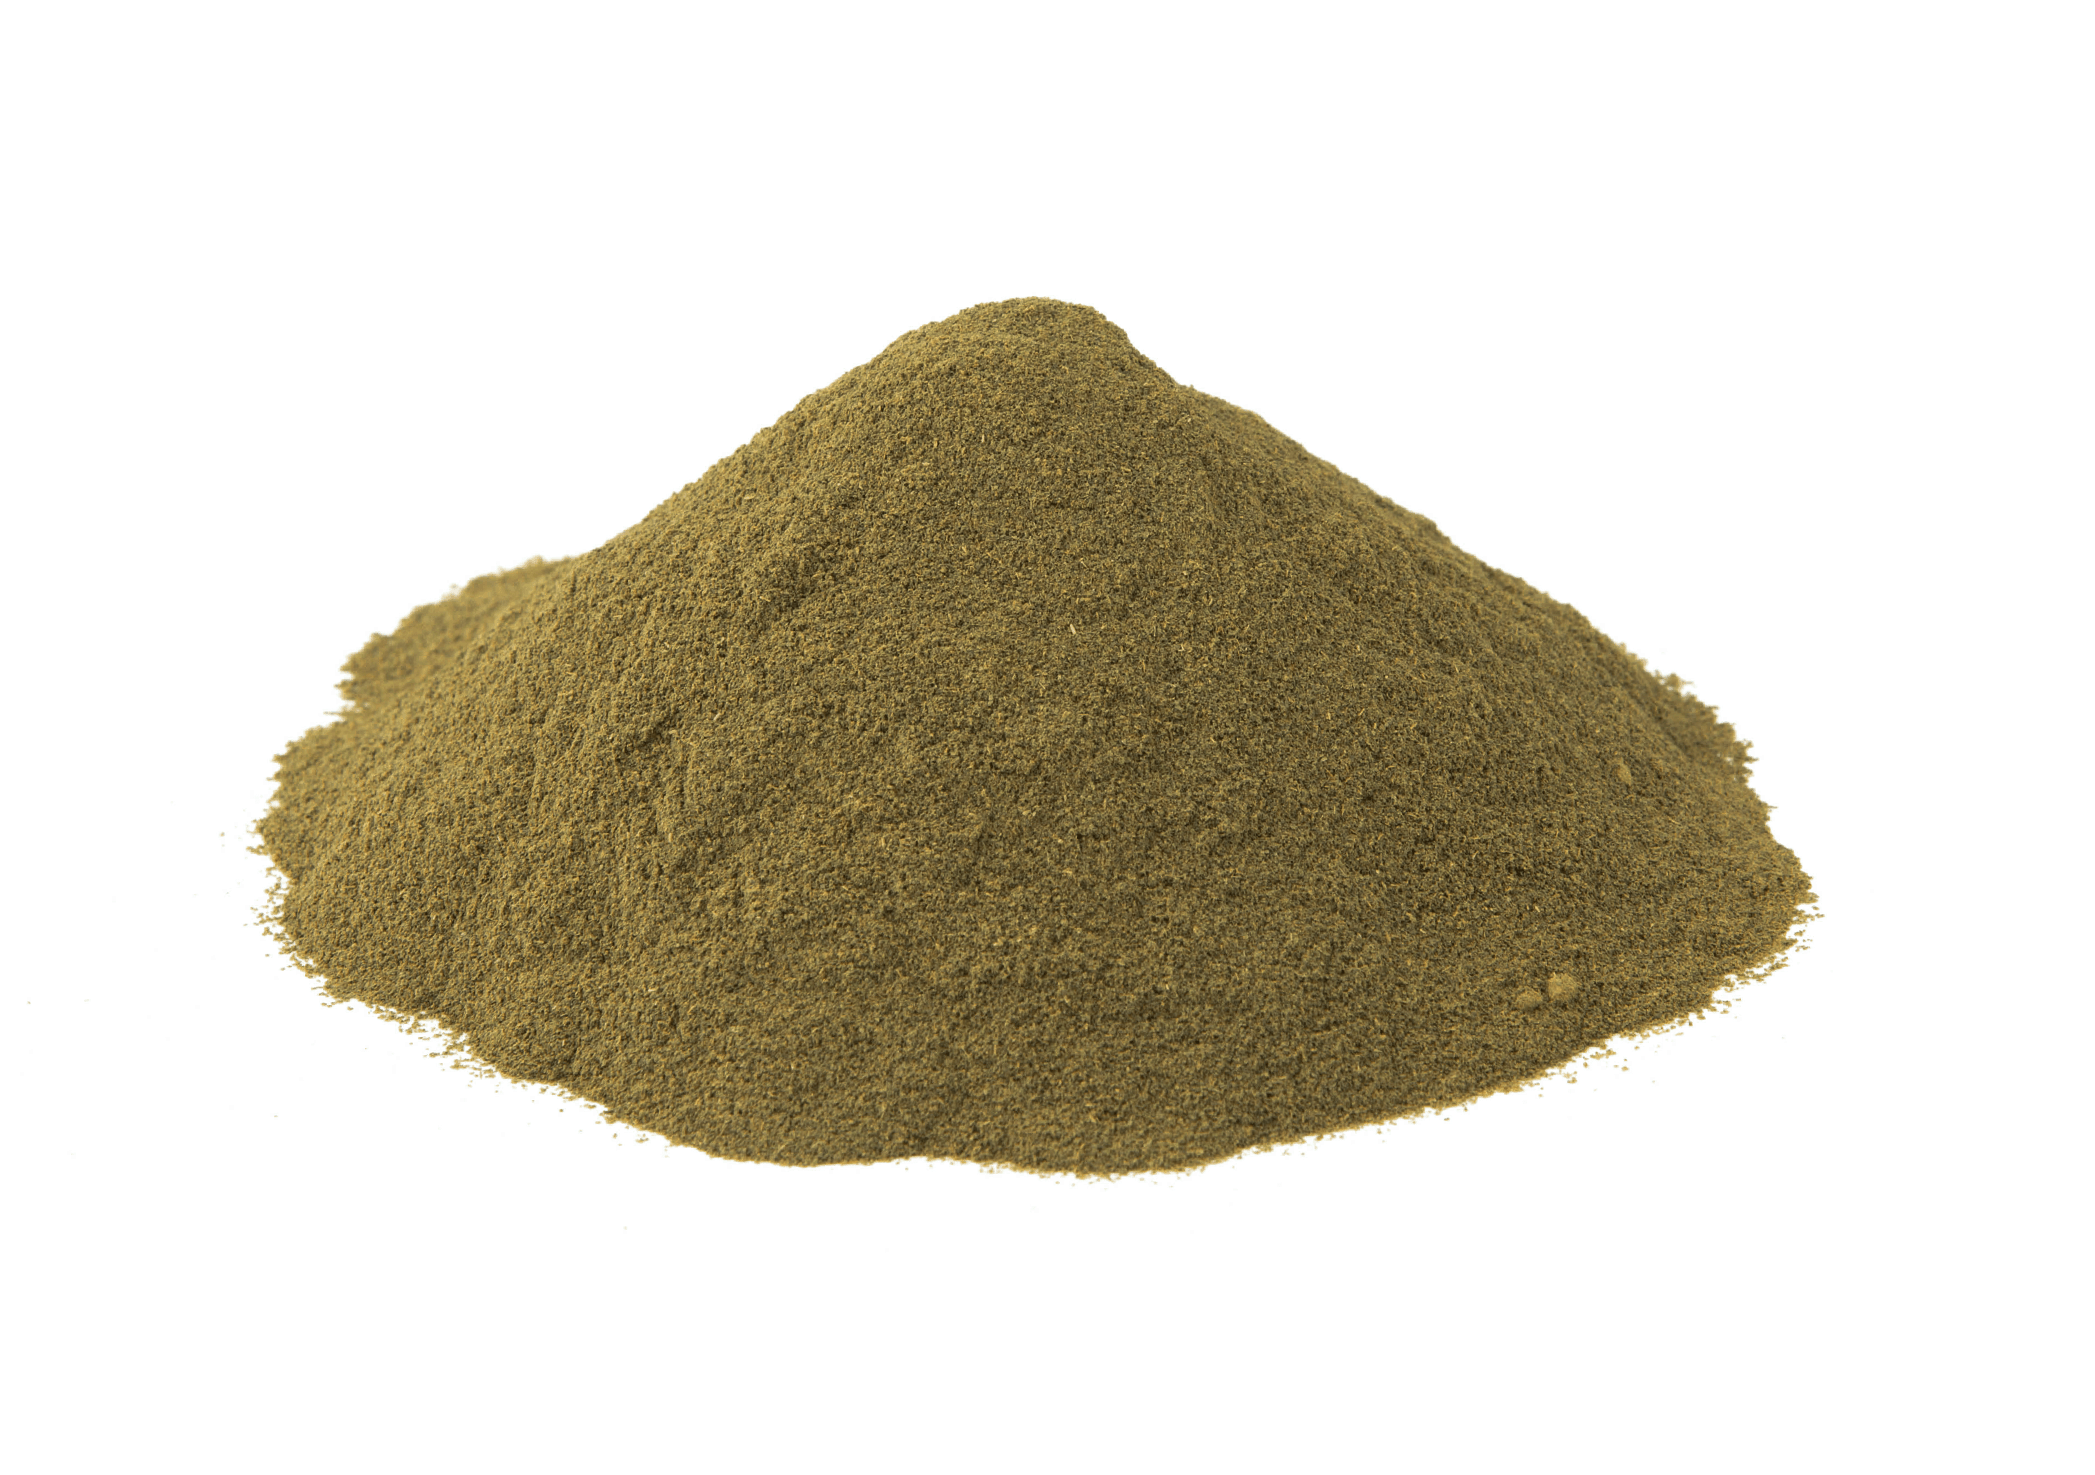 Looking For Something That Can Help You To Self-Manage Opioid Addiction? – Use Kratom!